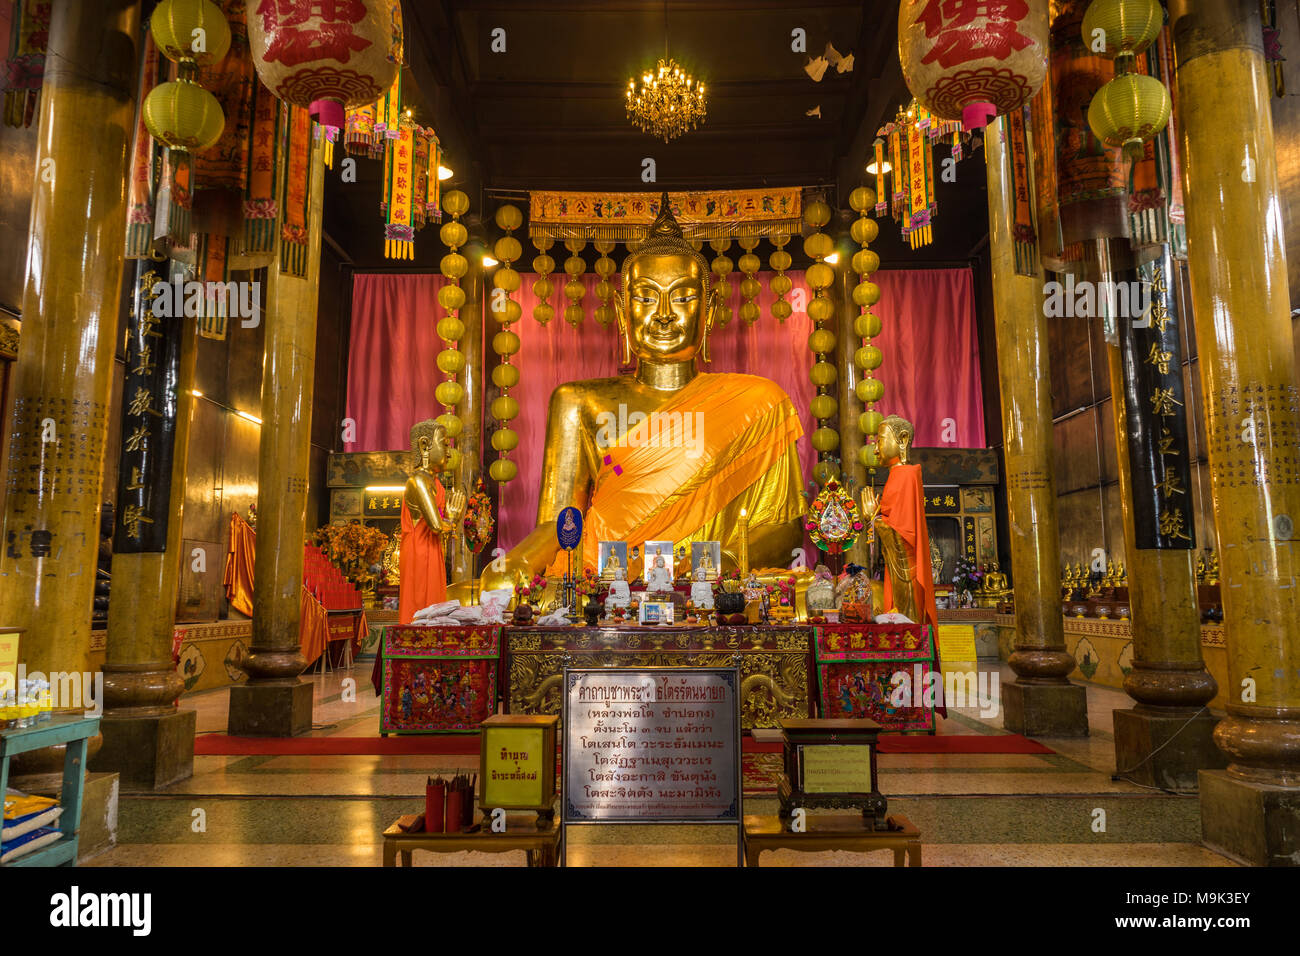 Chachoengsao, Thailand - September 24, 2016: Chinese golden Buddha Image in Chinese temple where Chinese Buddhist to worship in Chachoengsao, Thailand - Stock Image